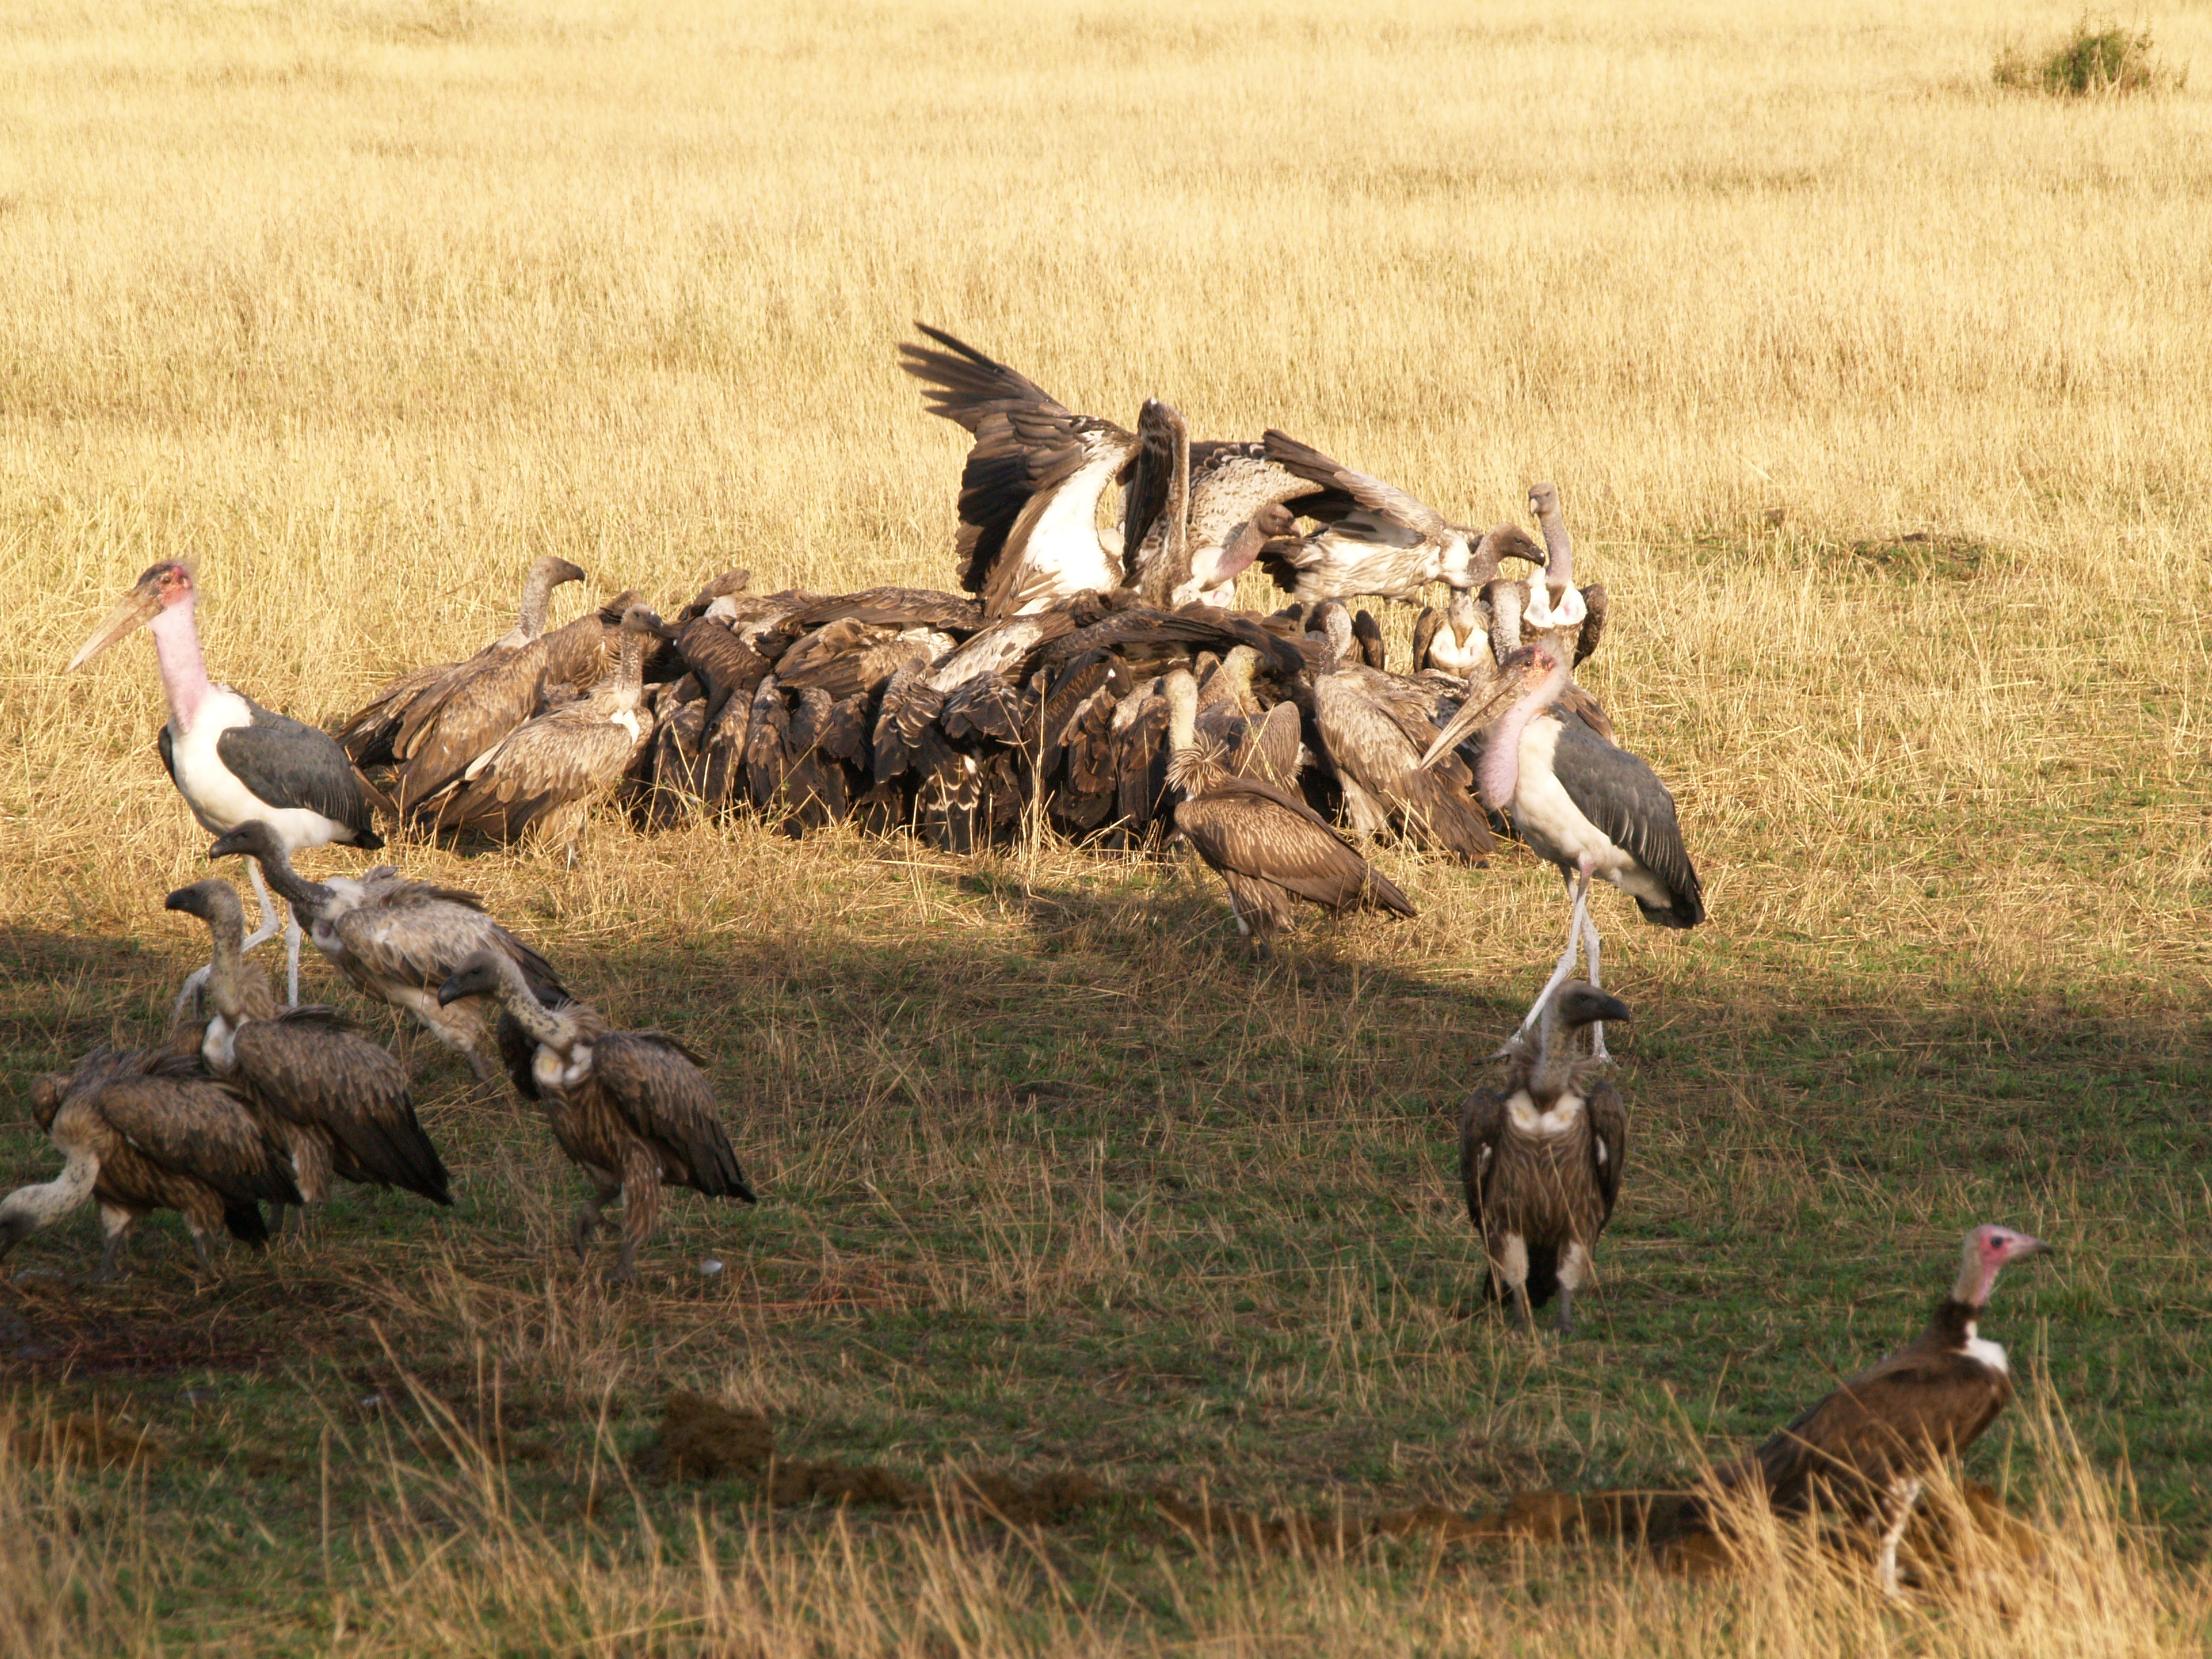 vultures consuming a kill